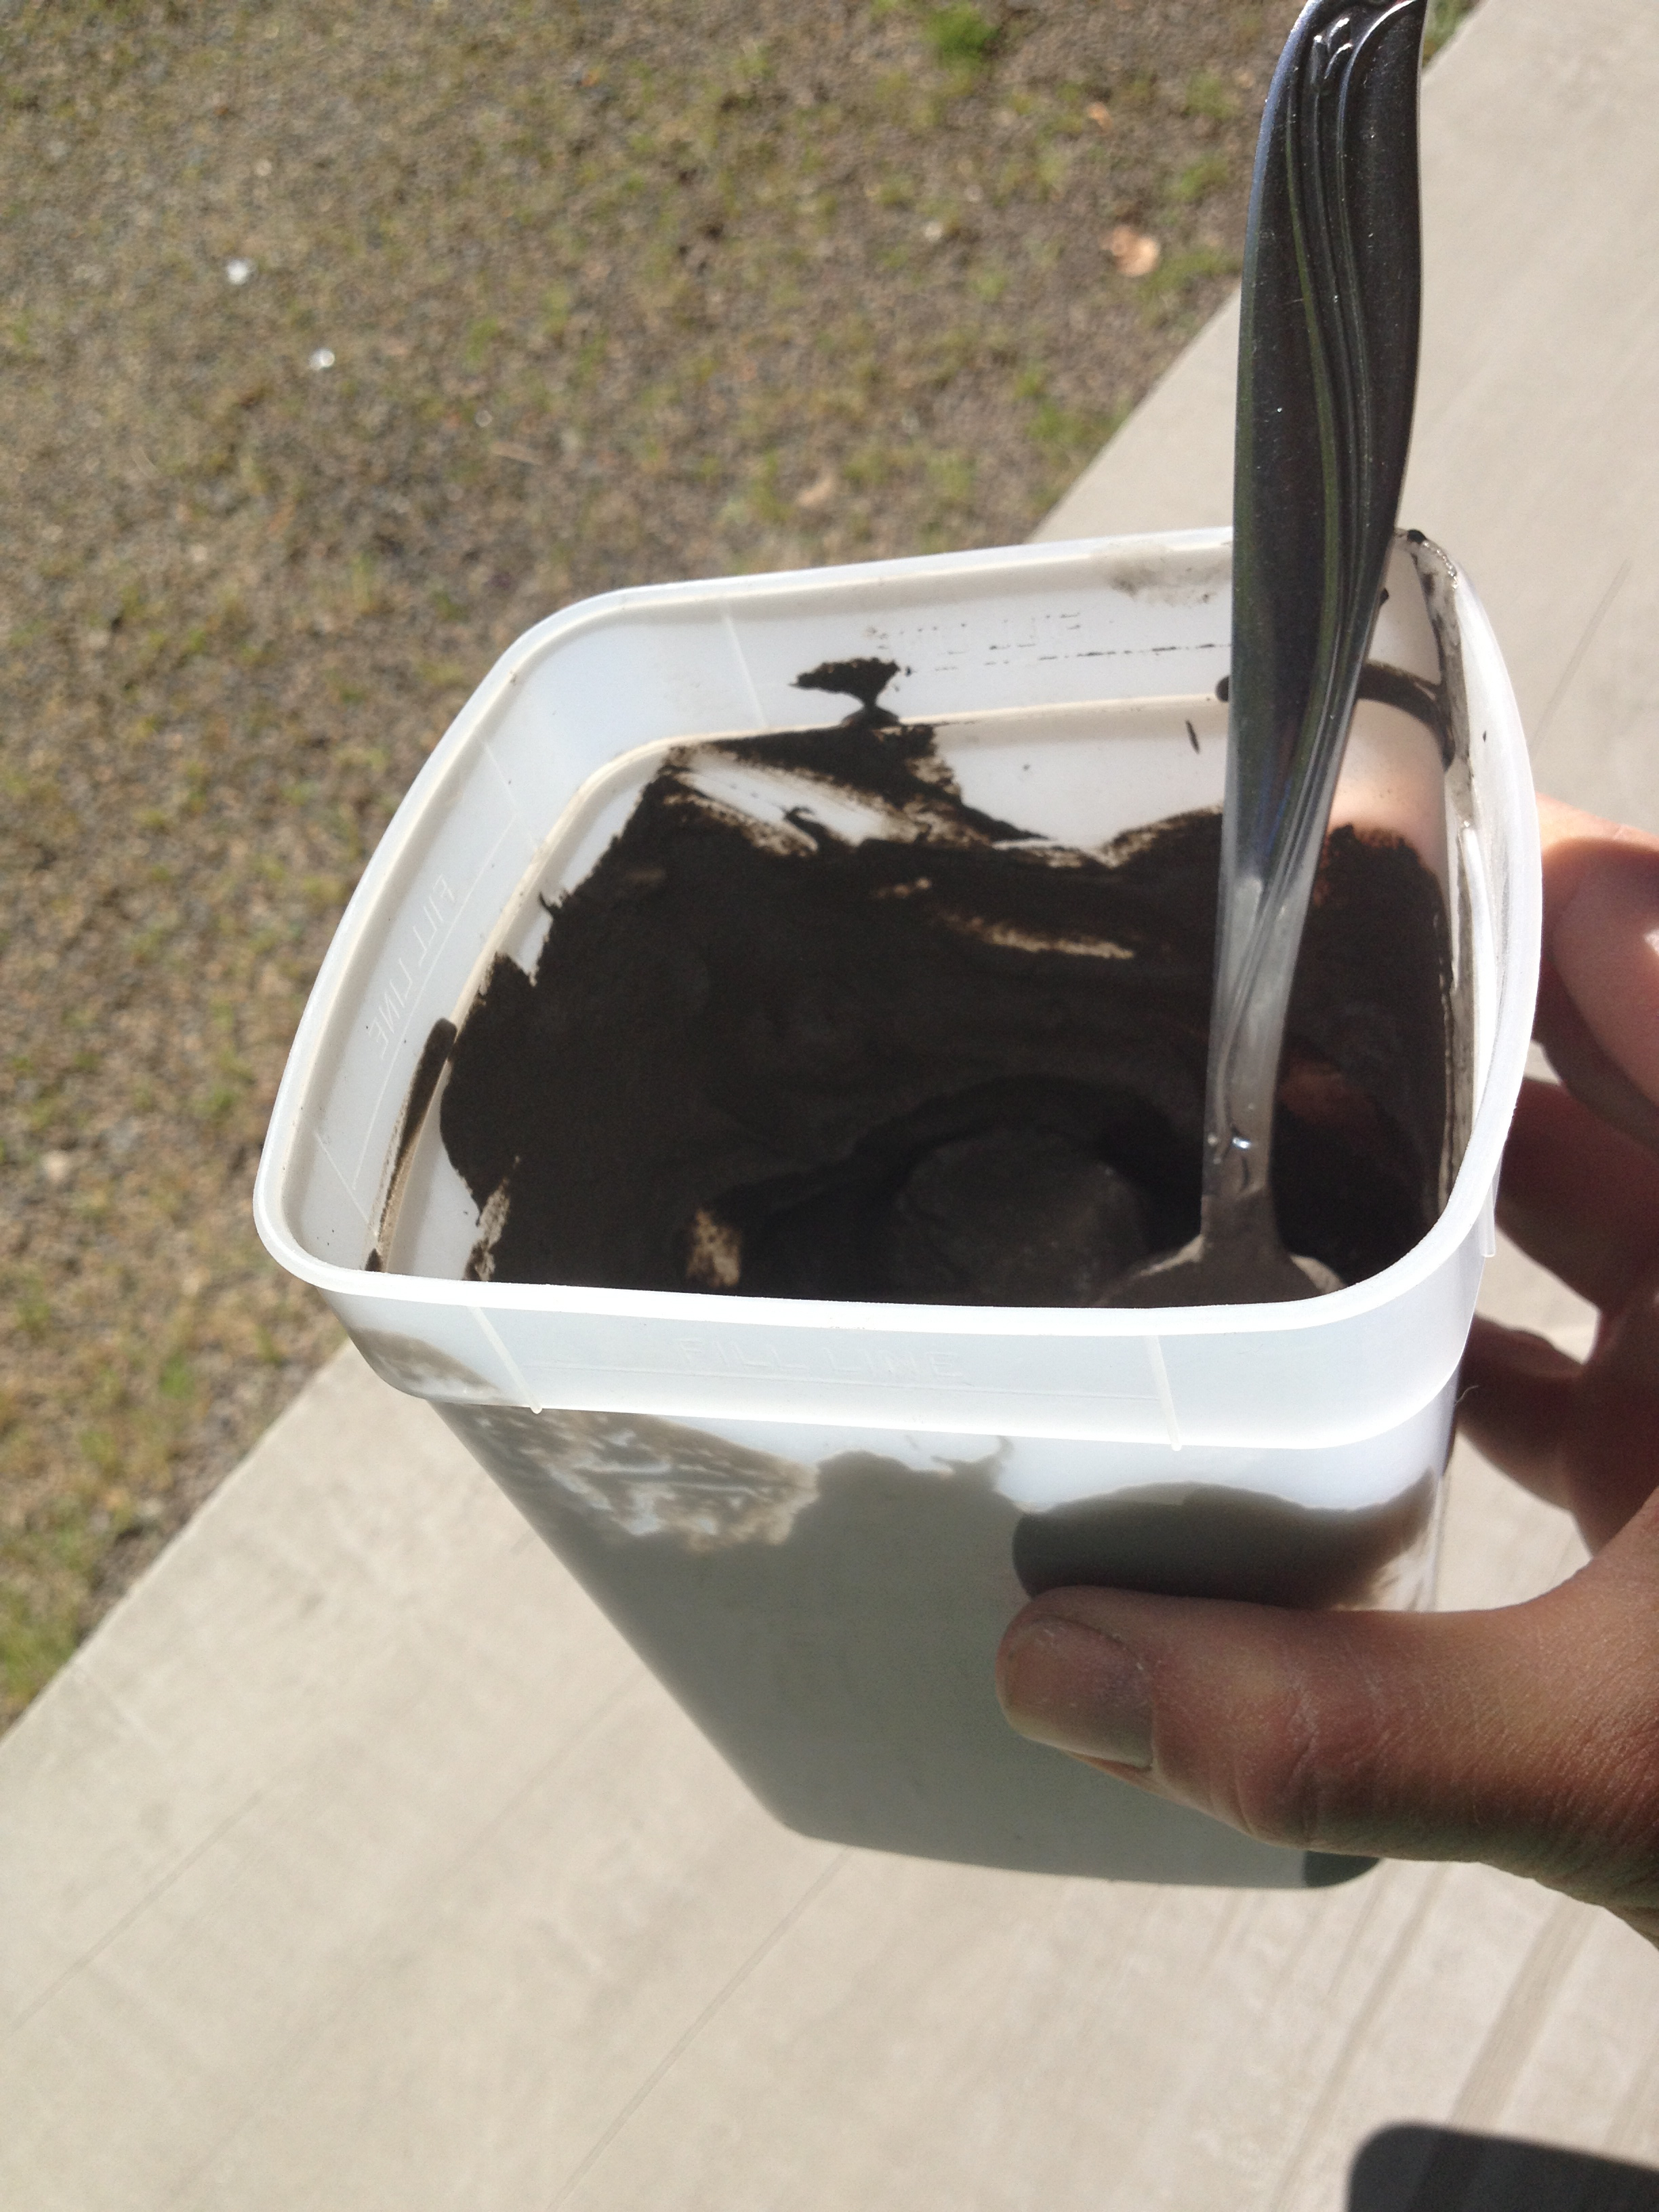 No need for buckets and trowels; I used a plastic container and spoon.